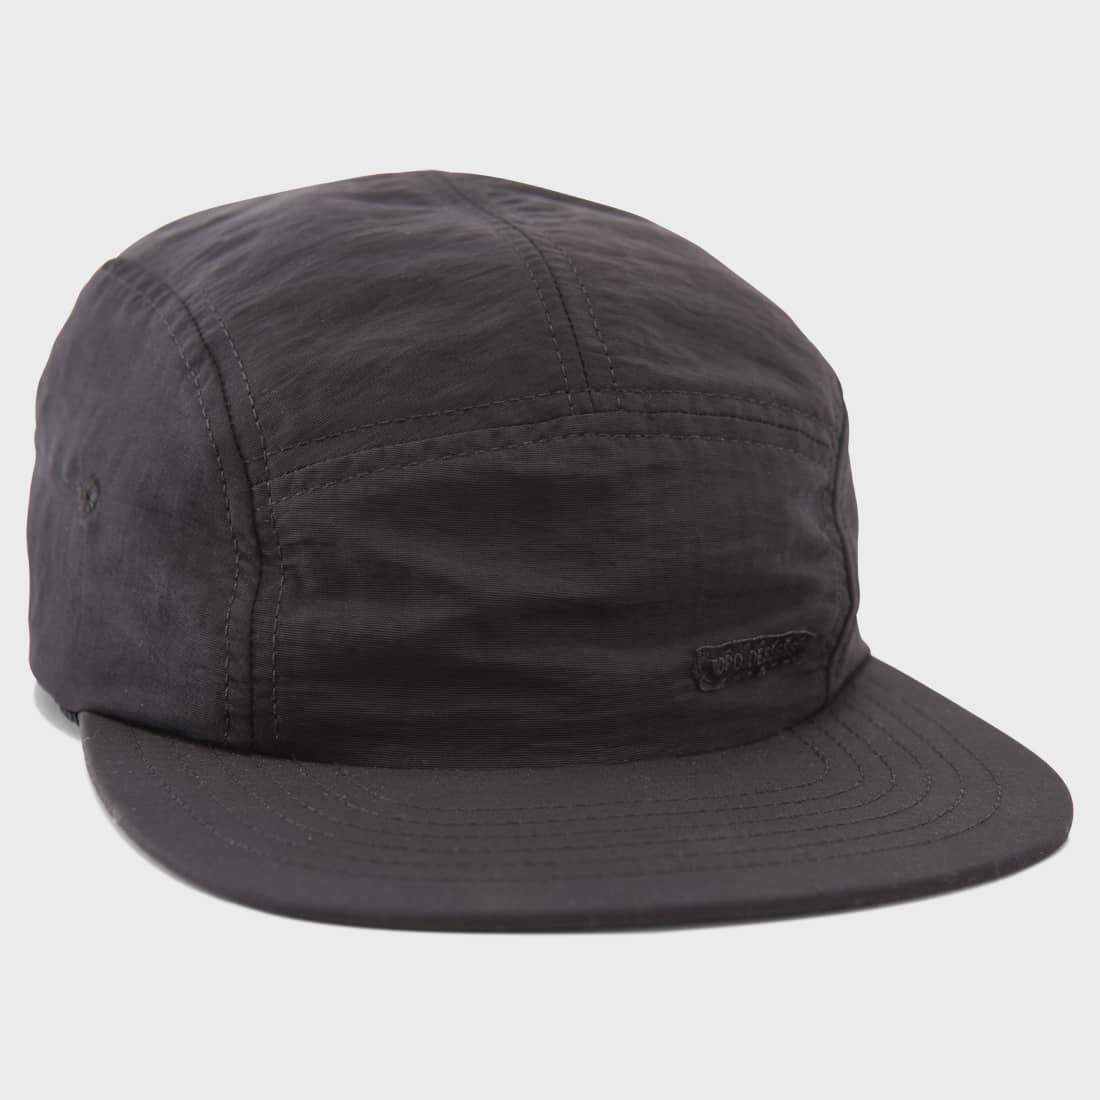 TOPO Designs Nylon Camp Hat Black